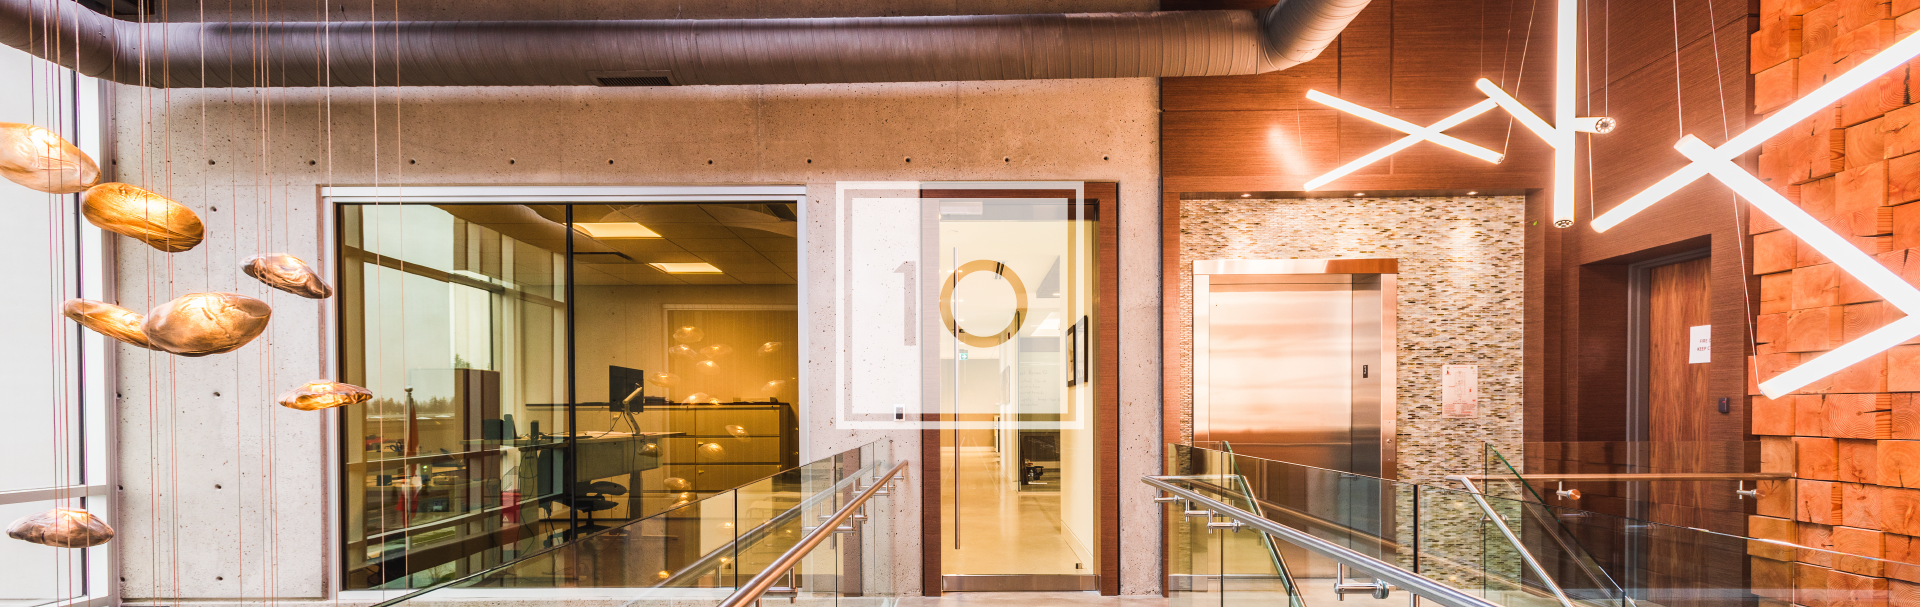 Commercial design head office hallway made of concrete, reclaimed wood, and bocci lighting